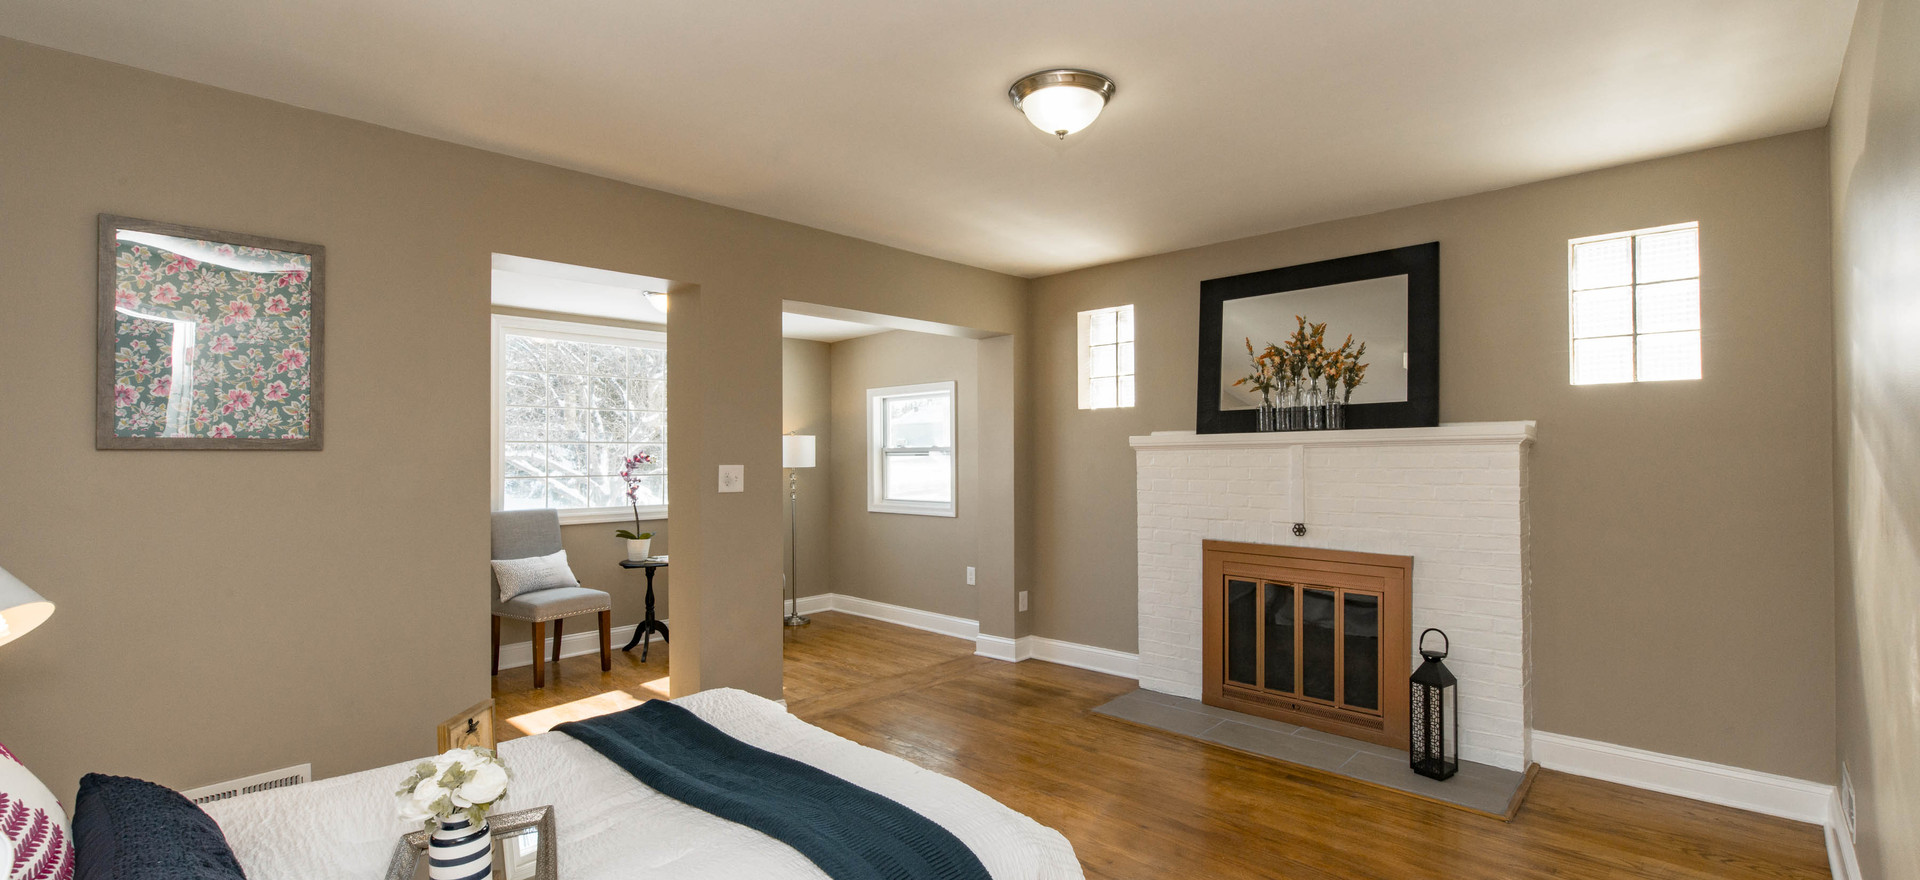 Master Bedroom (Vacant Staged)